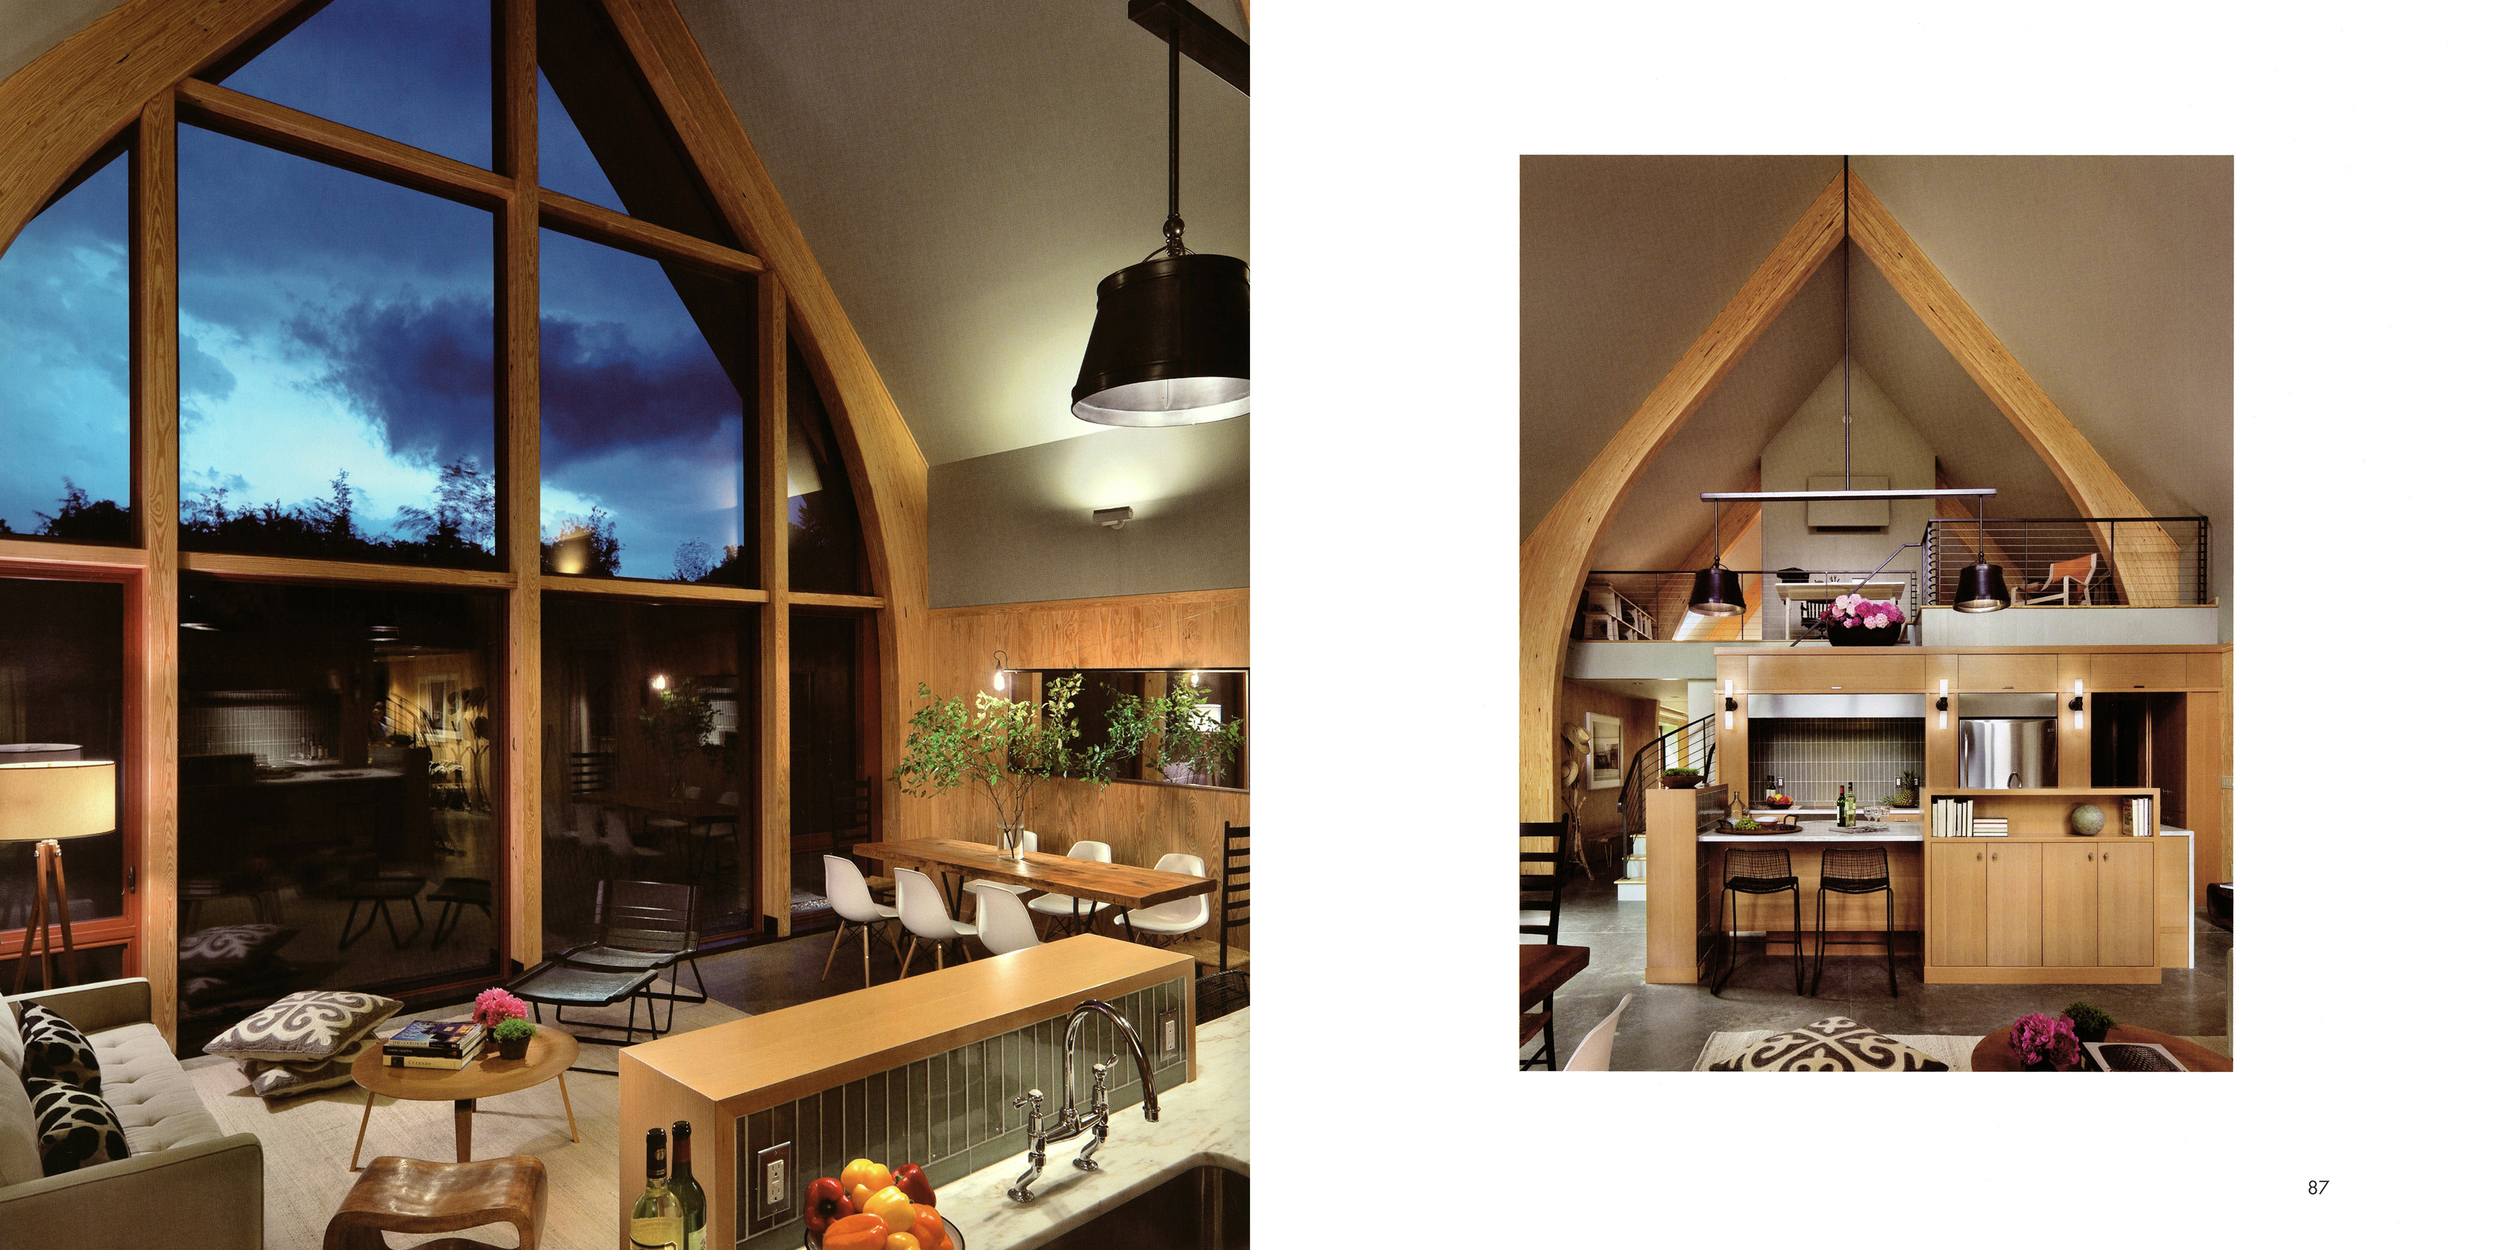 Paul worked with Dennis Wedlick on the design of the kitchen which is a centerpoint to the home.